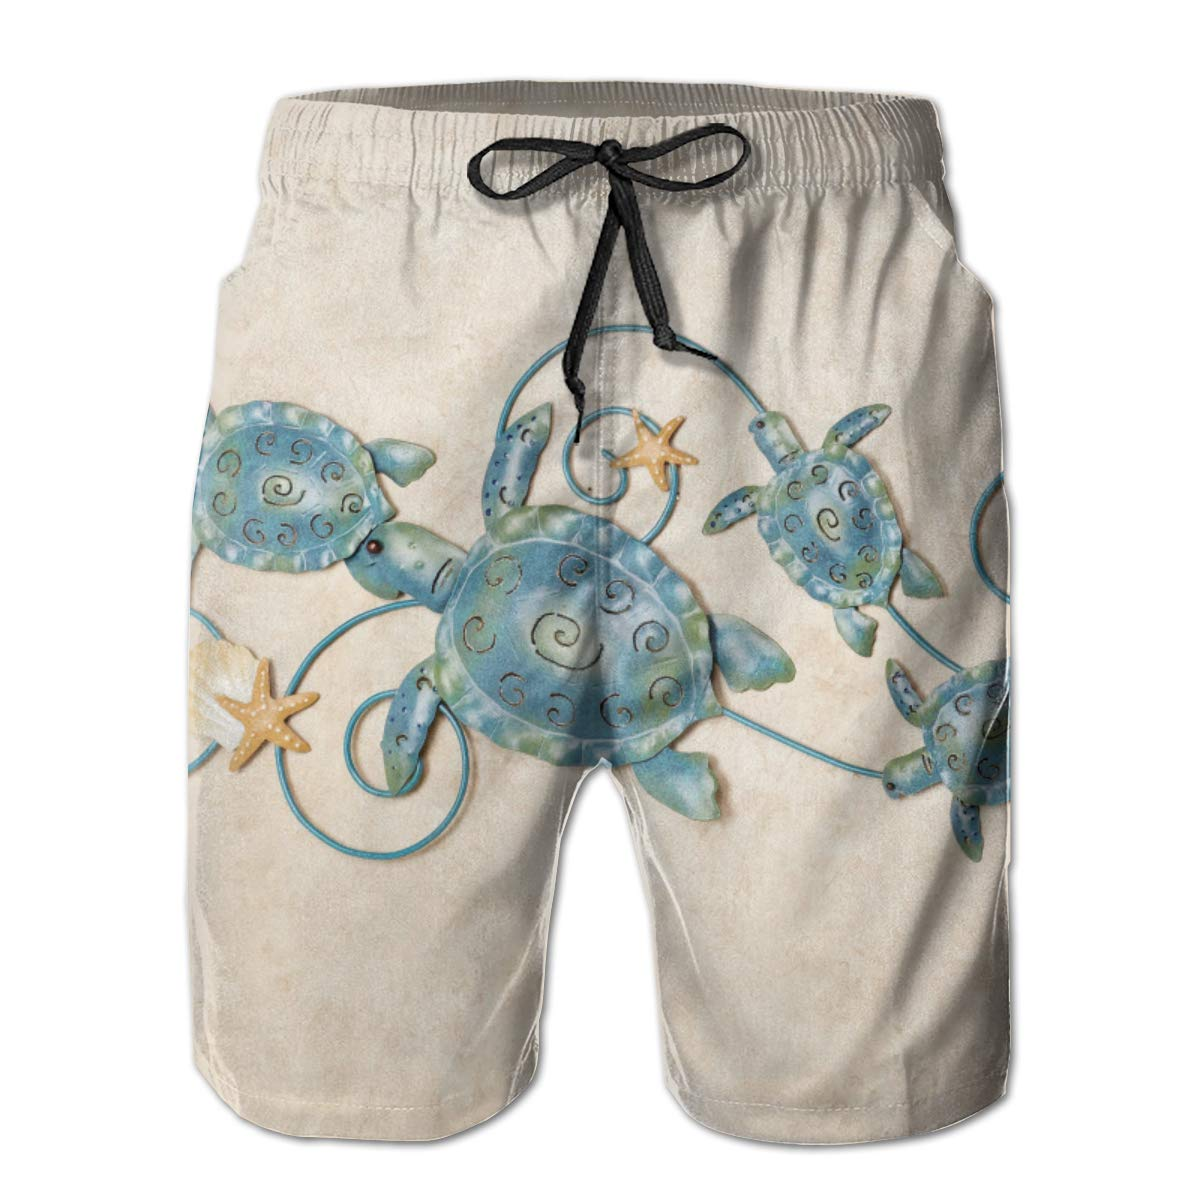 WWT Ocean Friends Sea Turtle Mens Printed Beach Shorts with Mesh Lining//Side Pockets